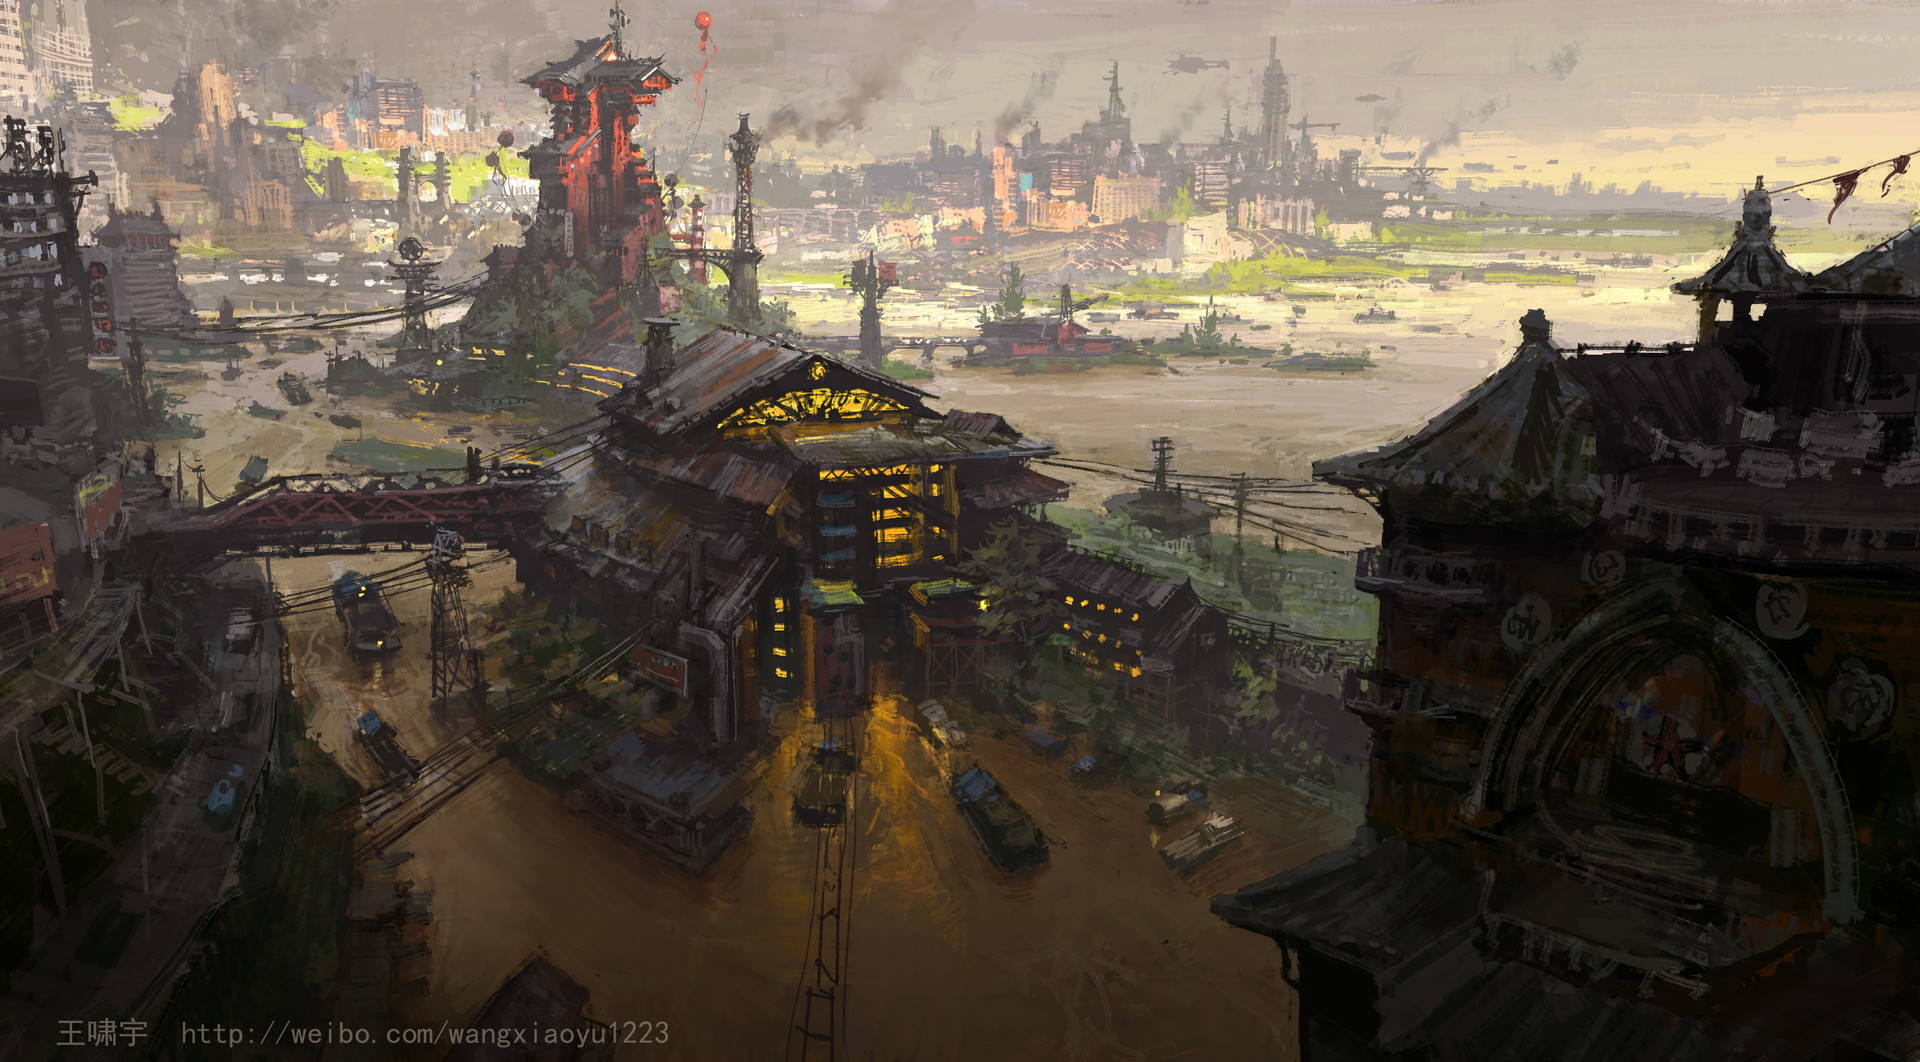 Fallout 4 Wallpaper Hd Artstation Old City Xiaoyu Wang